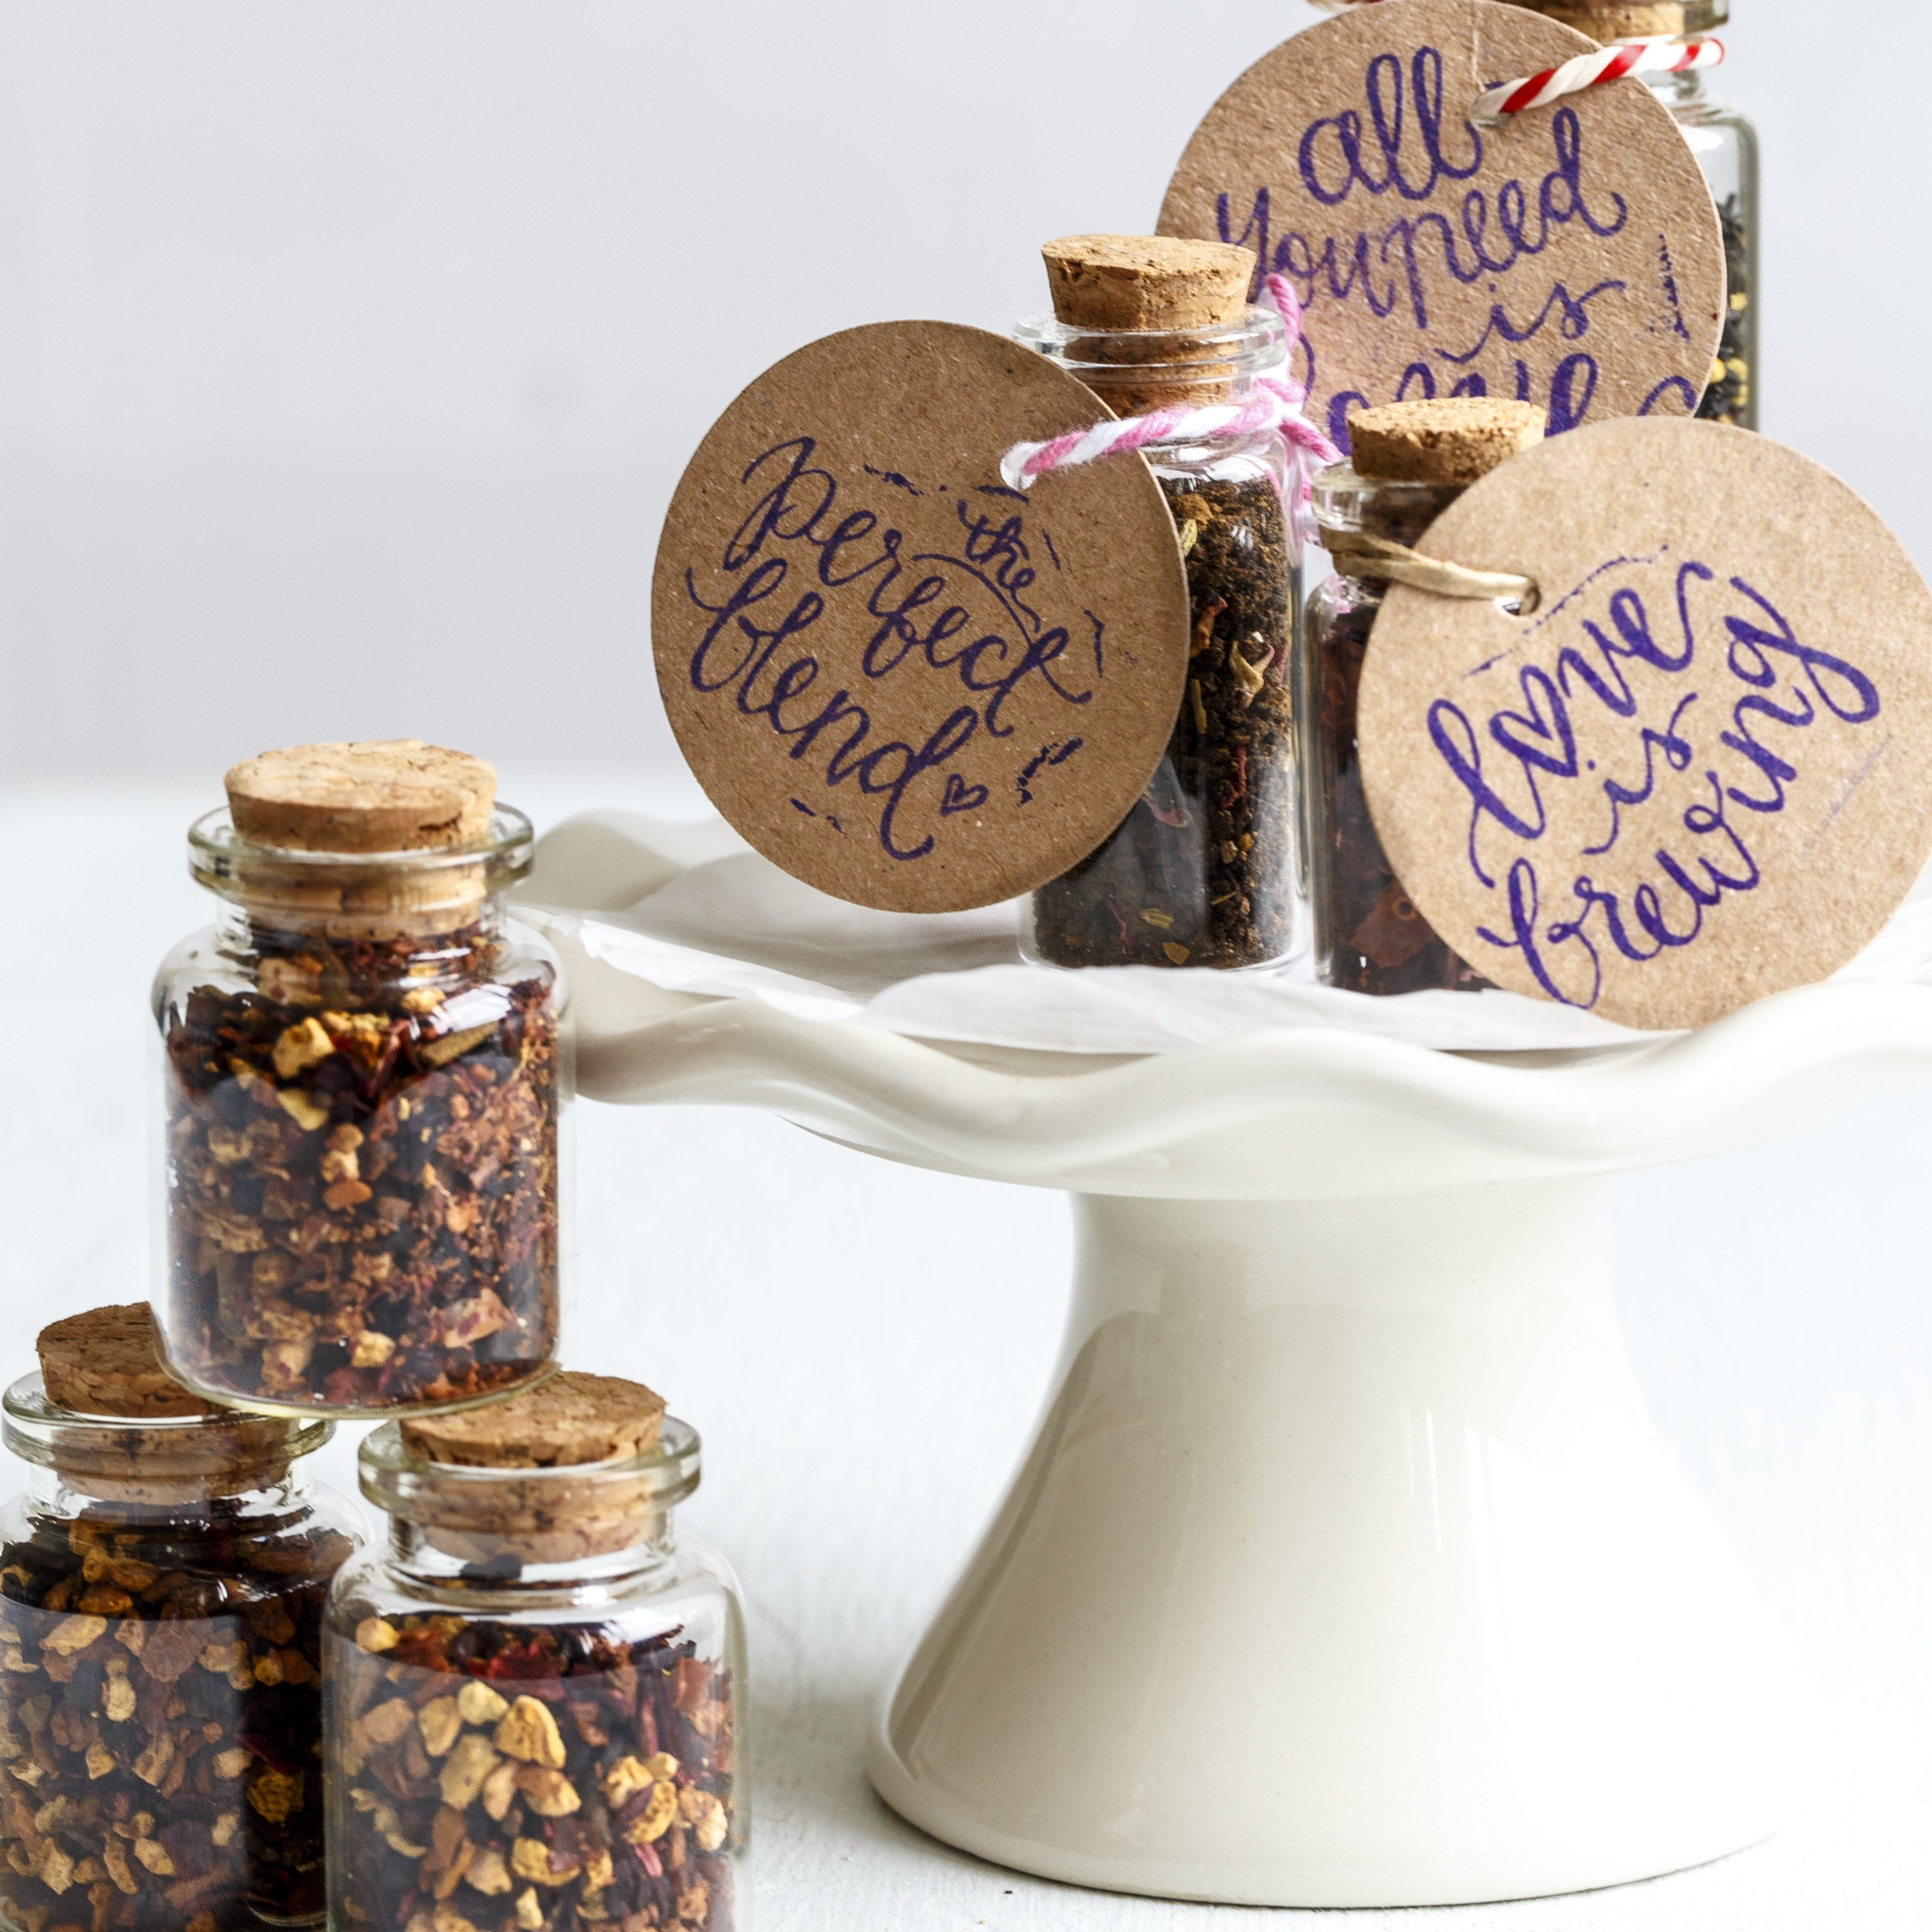 Personalised Tea In Cork Bottle Wedding Favour - Yumbles.com